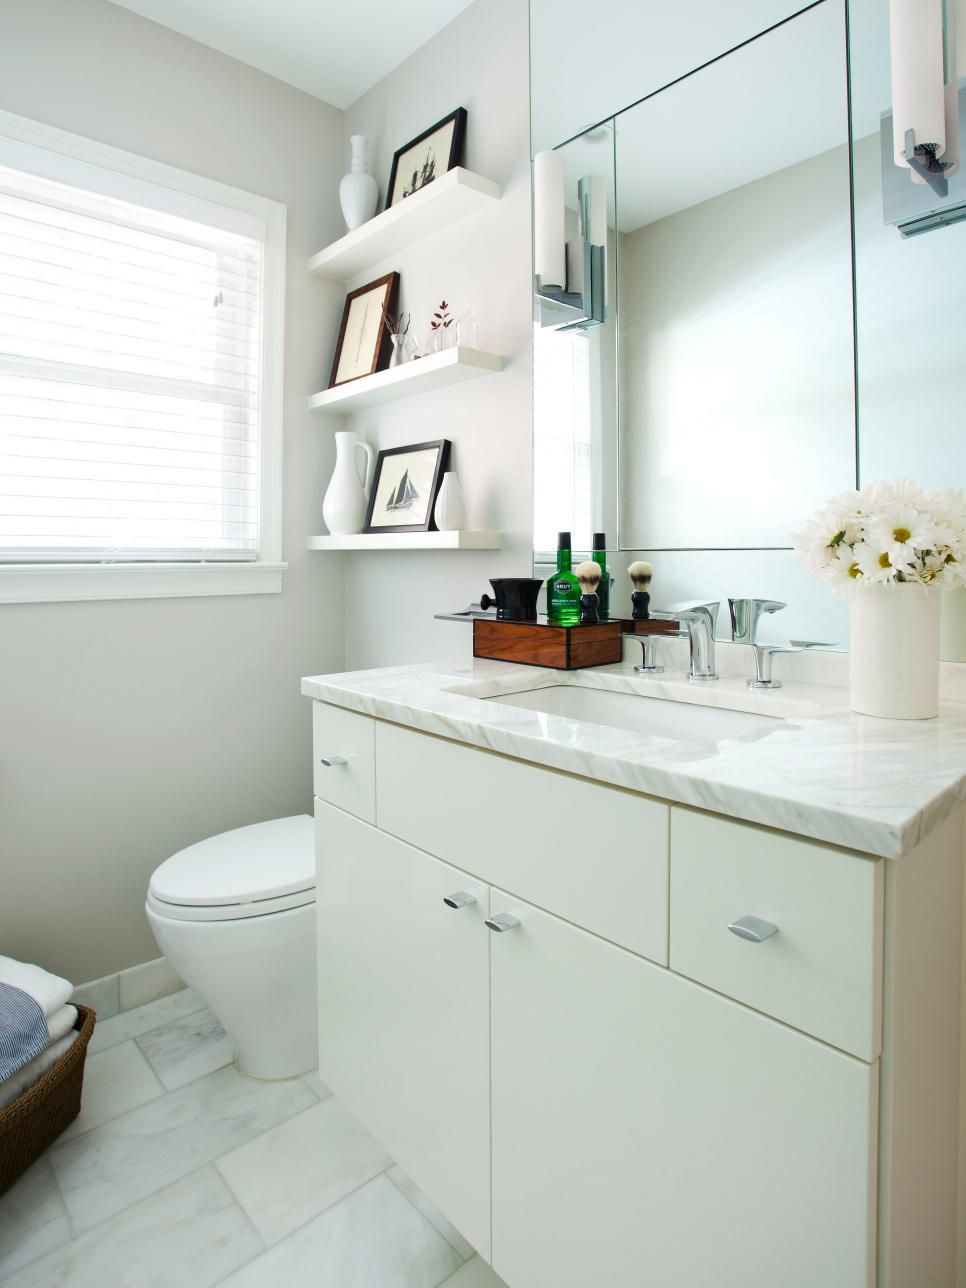 From The Floating Shelves To The Mirror And Vanity Geometric